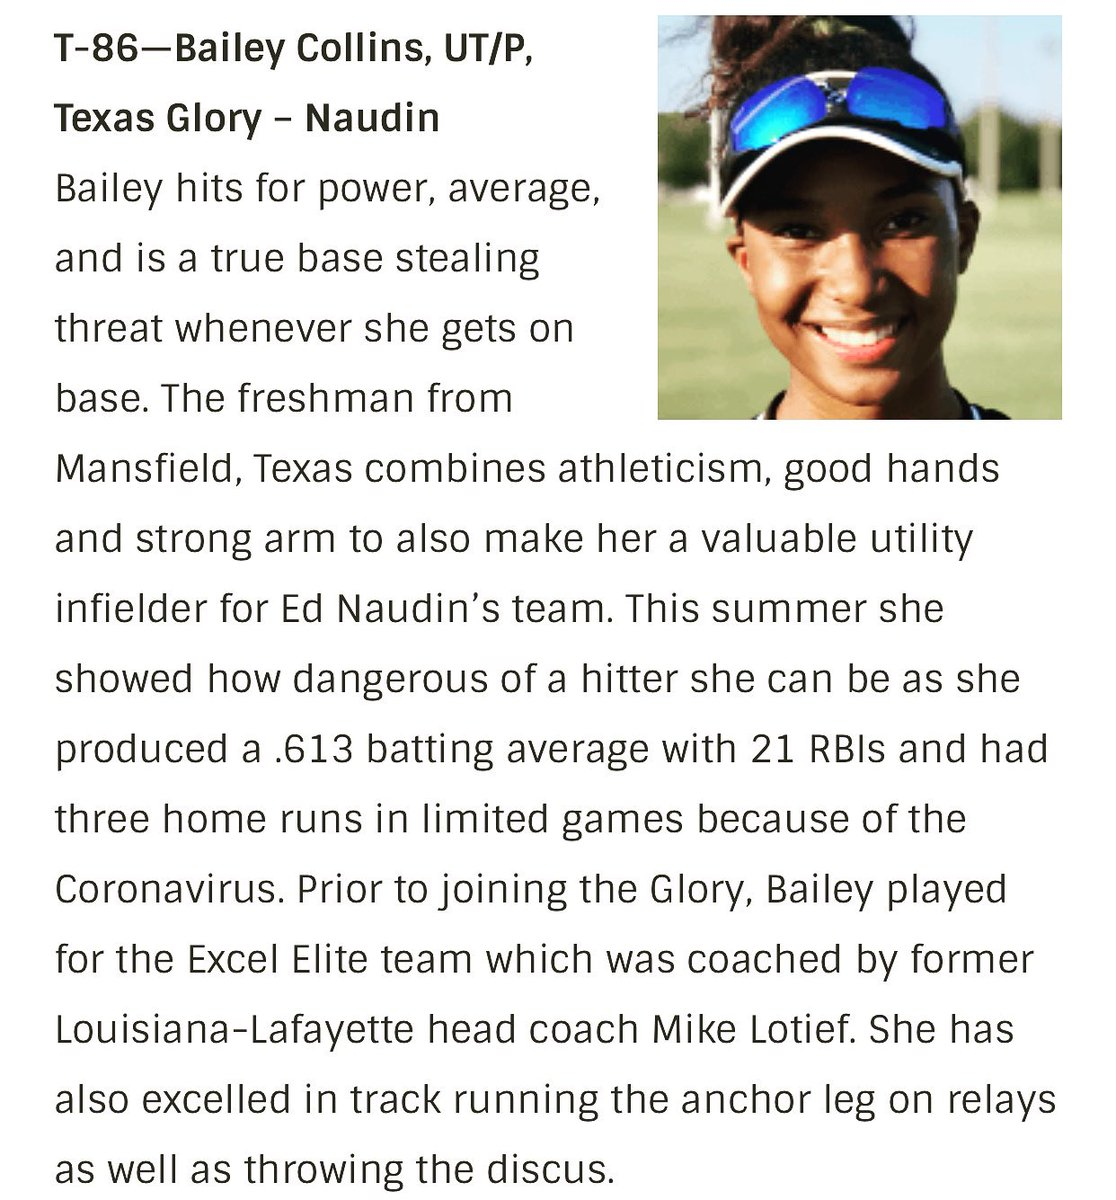 No matter what the goal never changes...Get Better Everyday!!! Congratulations Bailey! Thank you @Los_Stuff @BrenttEads @ExtraInningSB for the recognition. #CollinsGirls #LionOrGazelle #Elite100 @16uGloryNaudin @ednaudin @CedriColeman @mimi_k23 @The_MARR11 https://t.co/J9SH1lSzaW